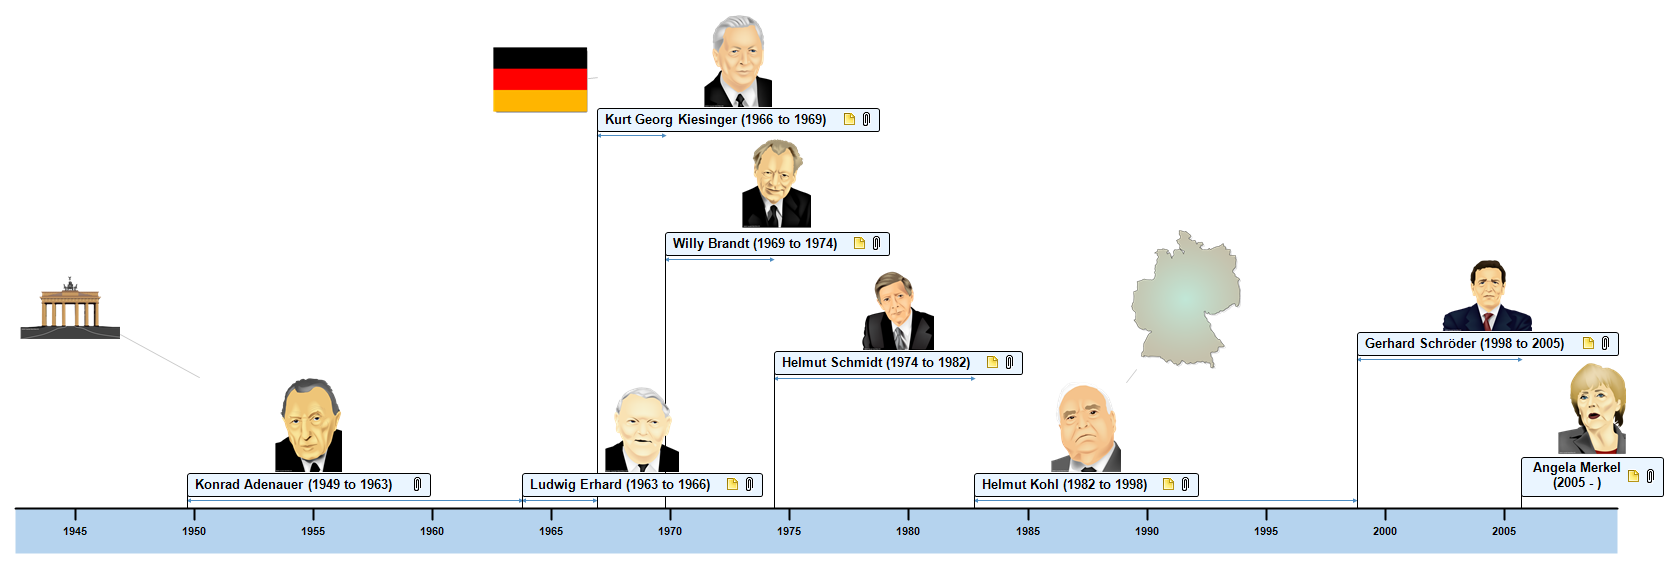 German Chancellors Timeline